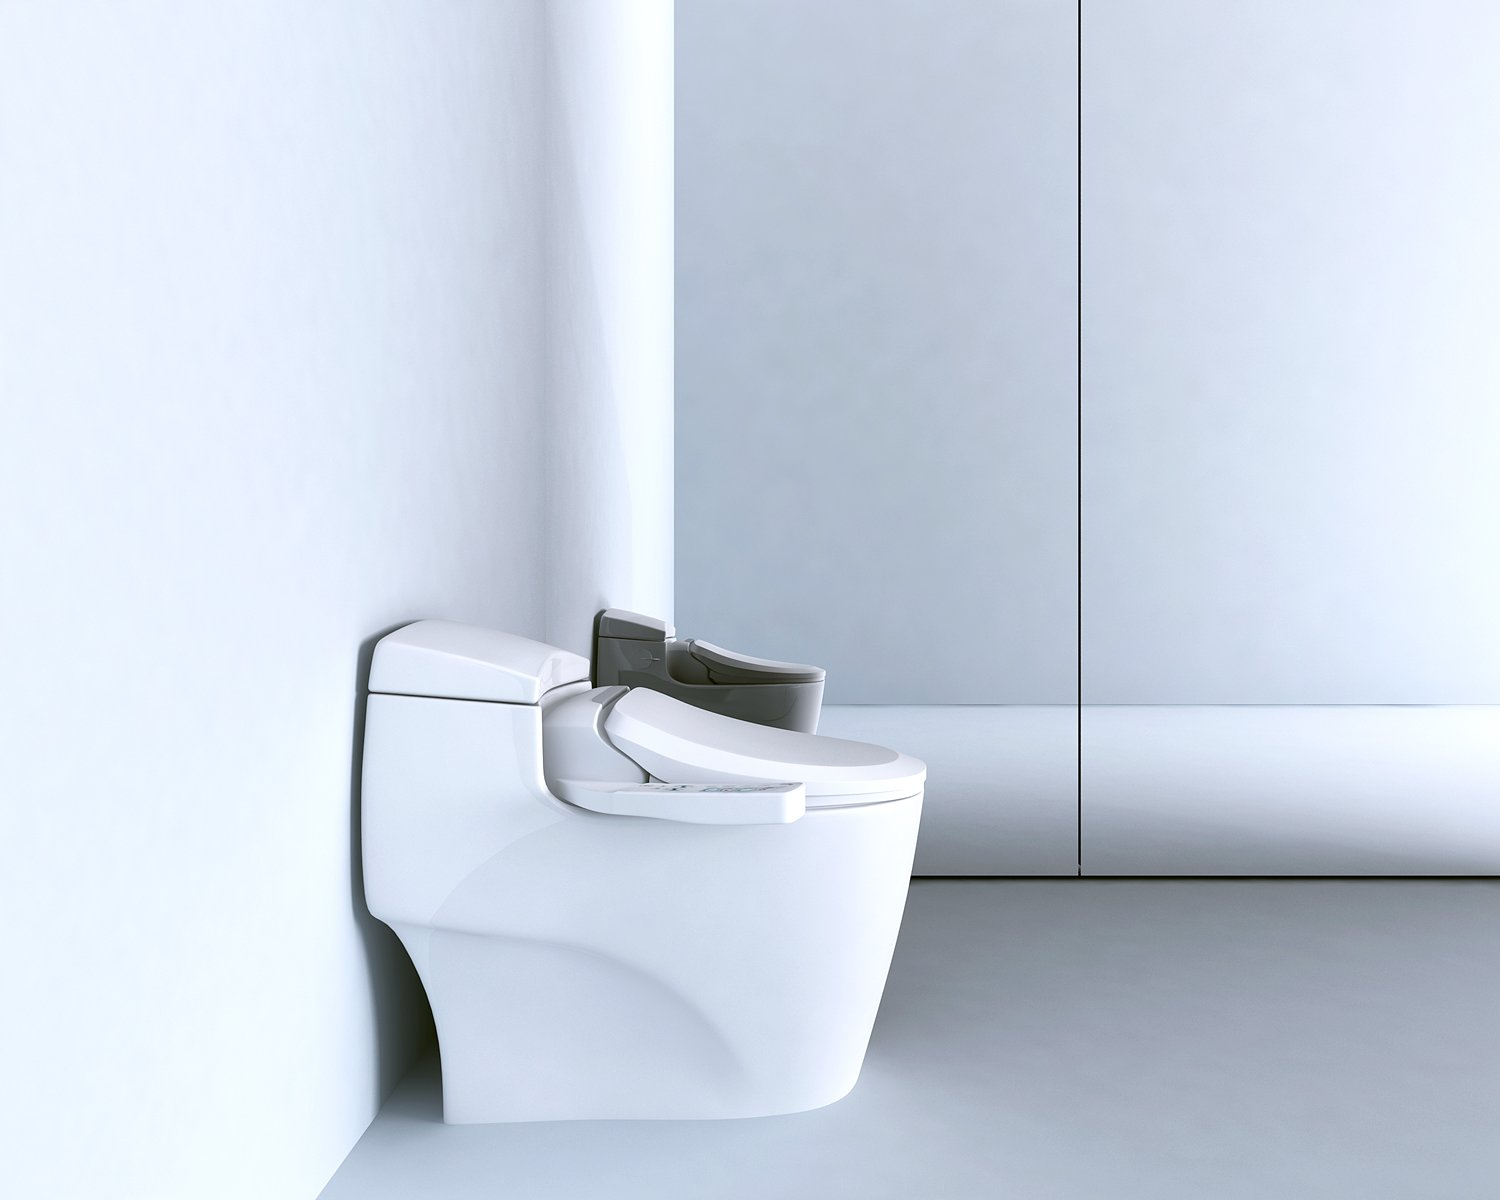 Bio Bidet Ultimate BB-600 Advanced Bidet Toilet Seat, Elongated White. Easy DIY Installation, Luxury Features From Side Panel, Adjustable Heated Seat and Water. Dual Nozzle Has Posterior and Feminine Wash by BioBidet (Image #4)